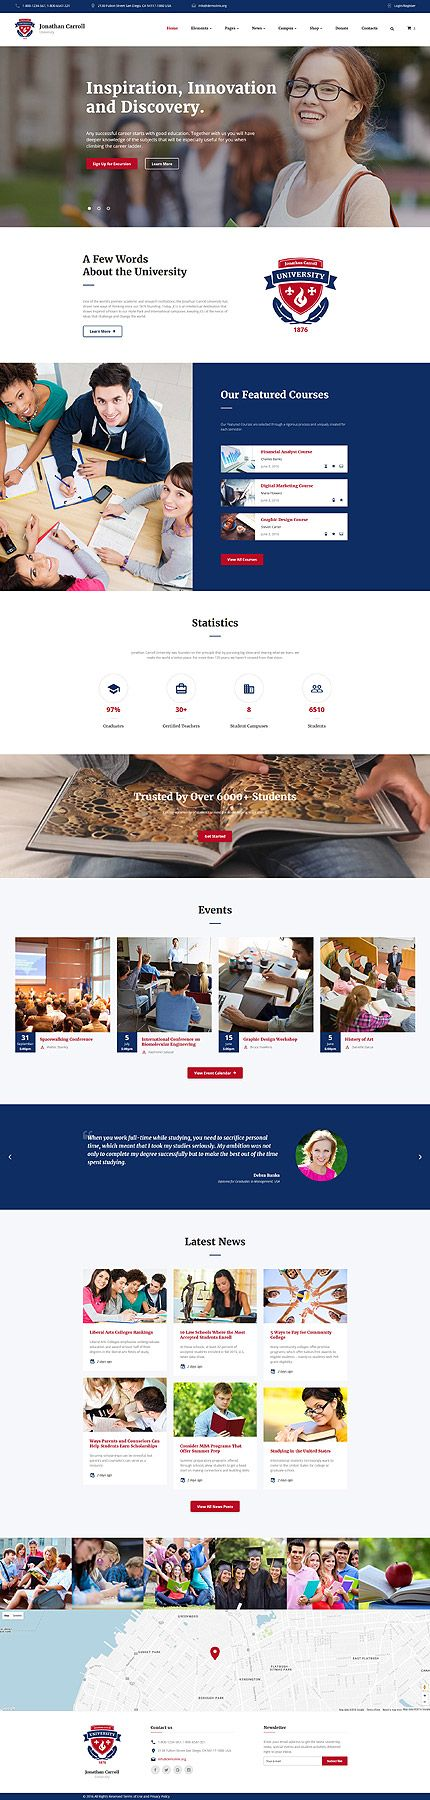 $75 - University Responsive Website Template